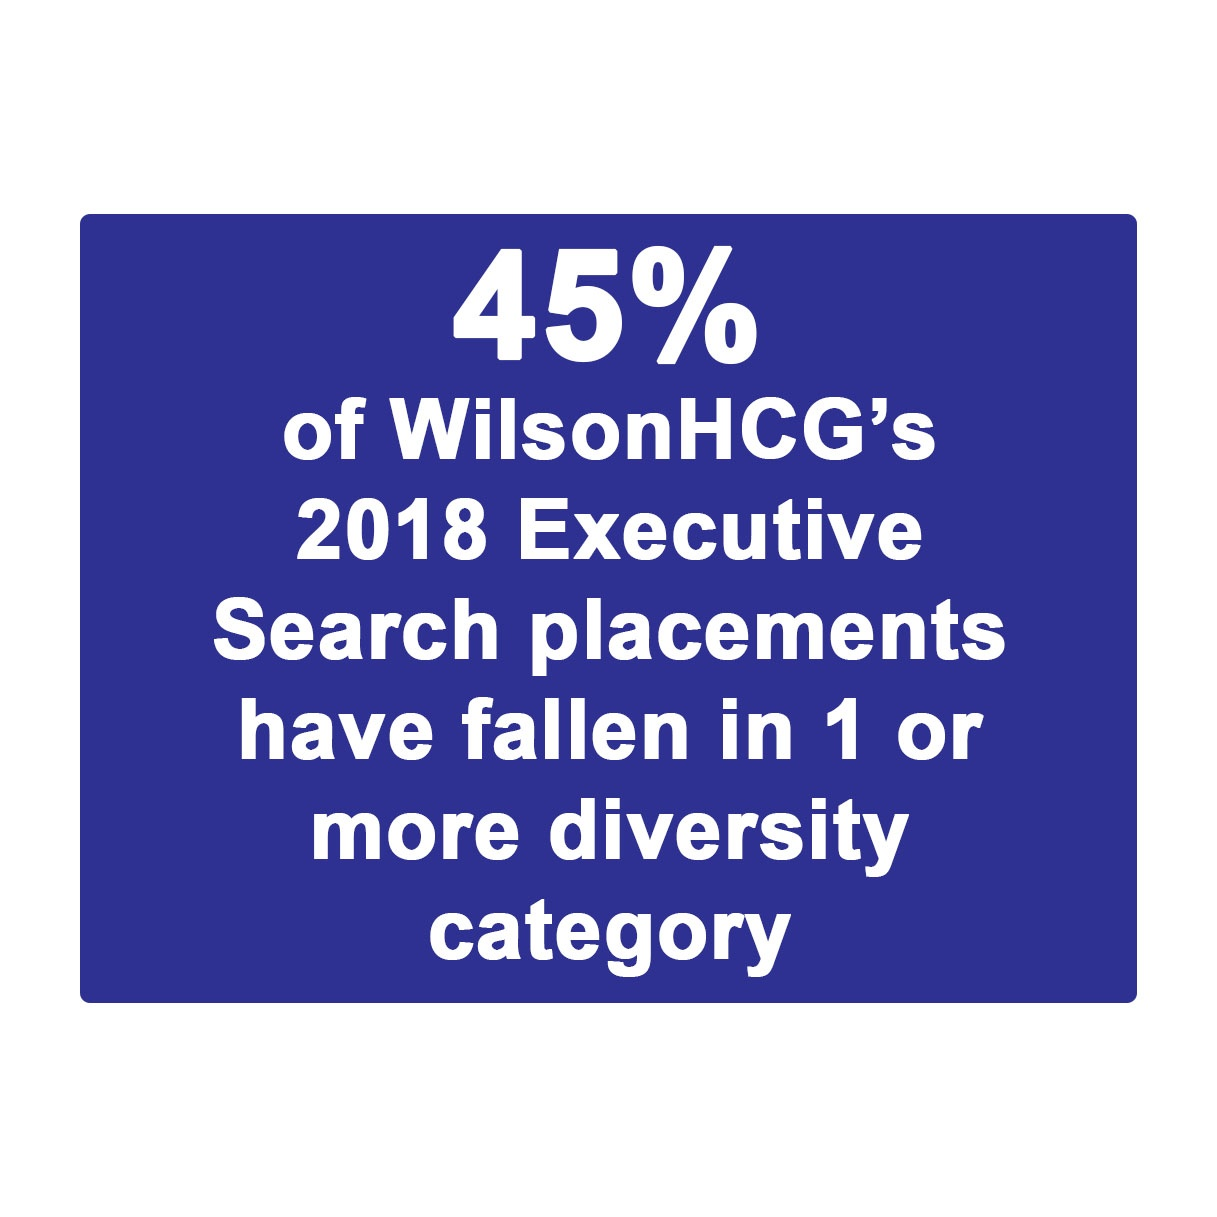 executive search diversity